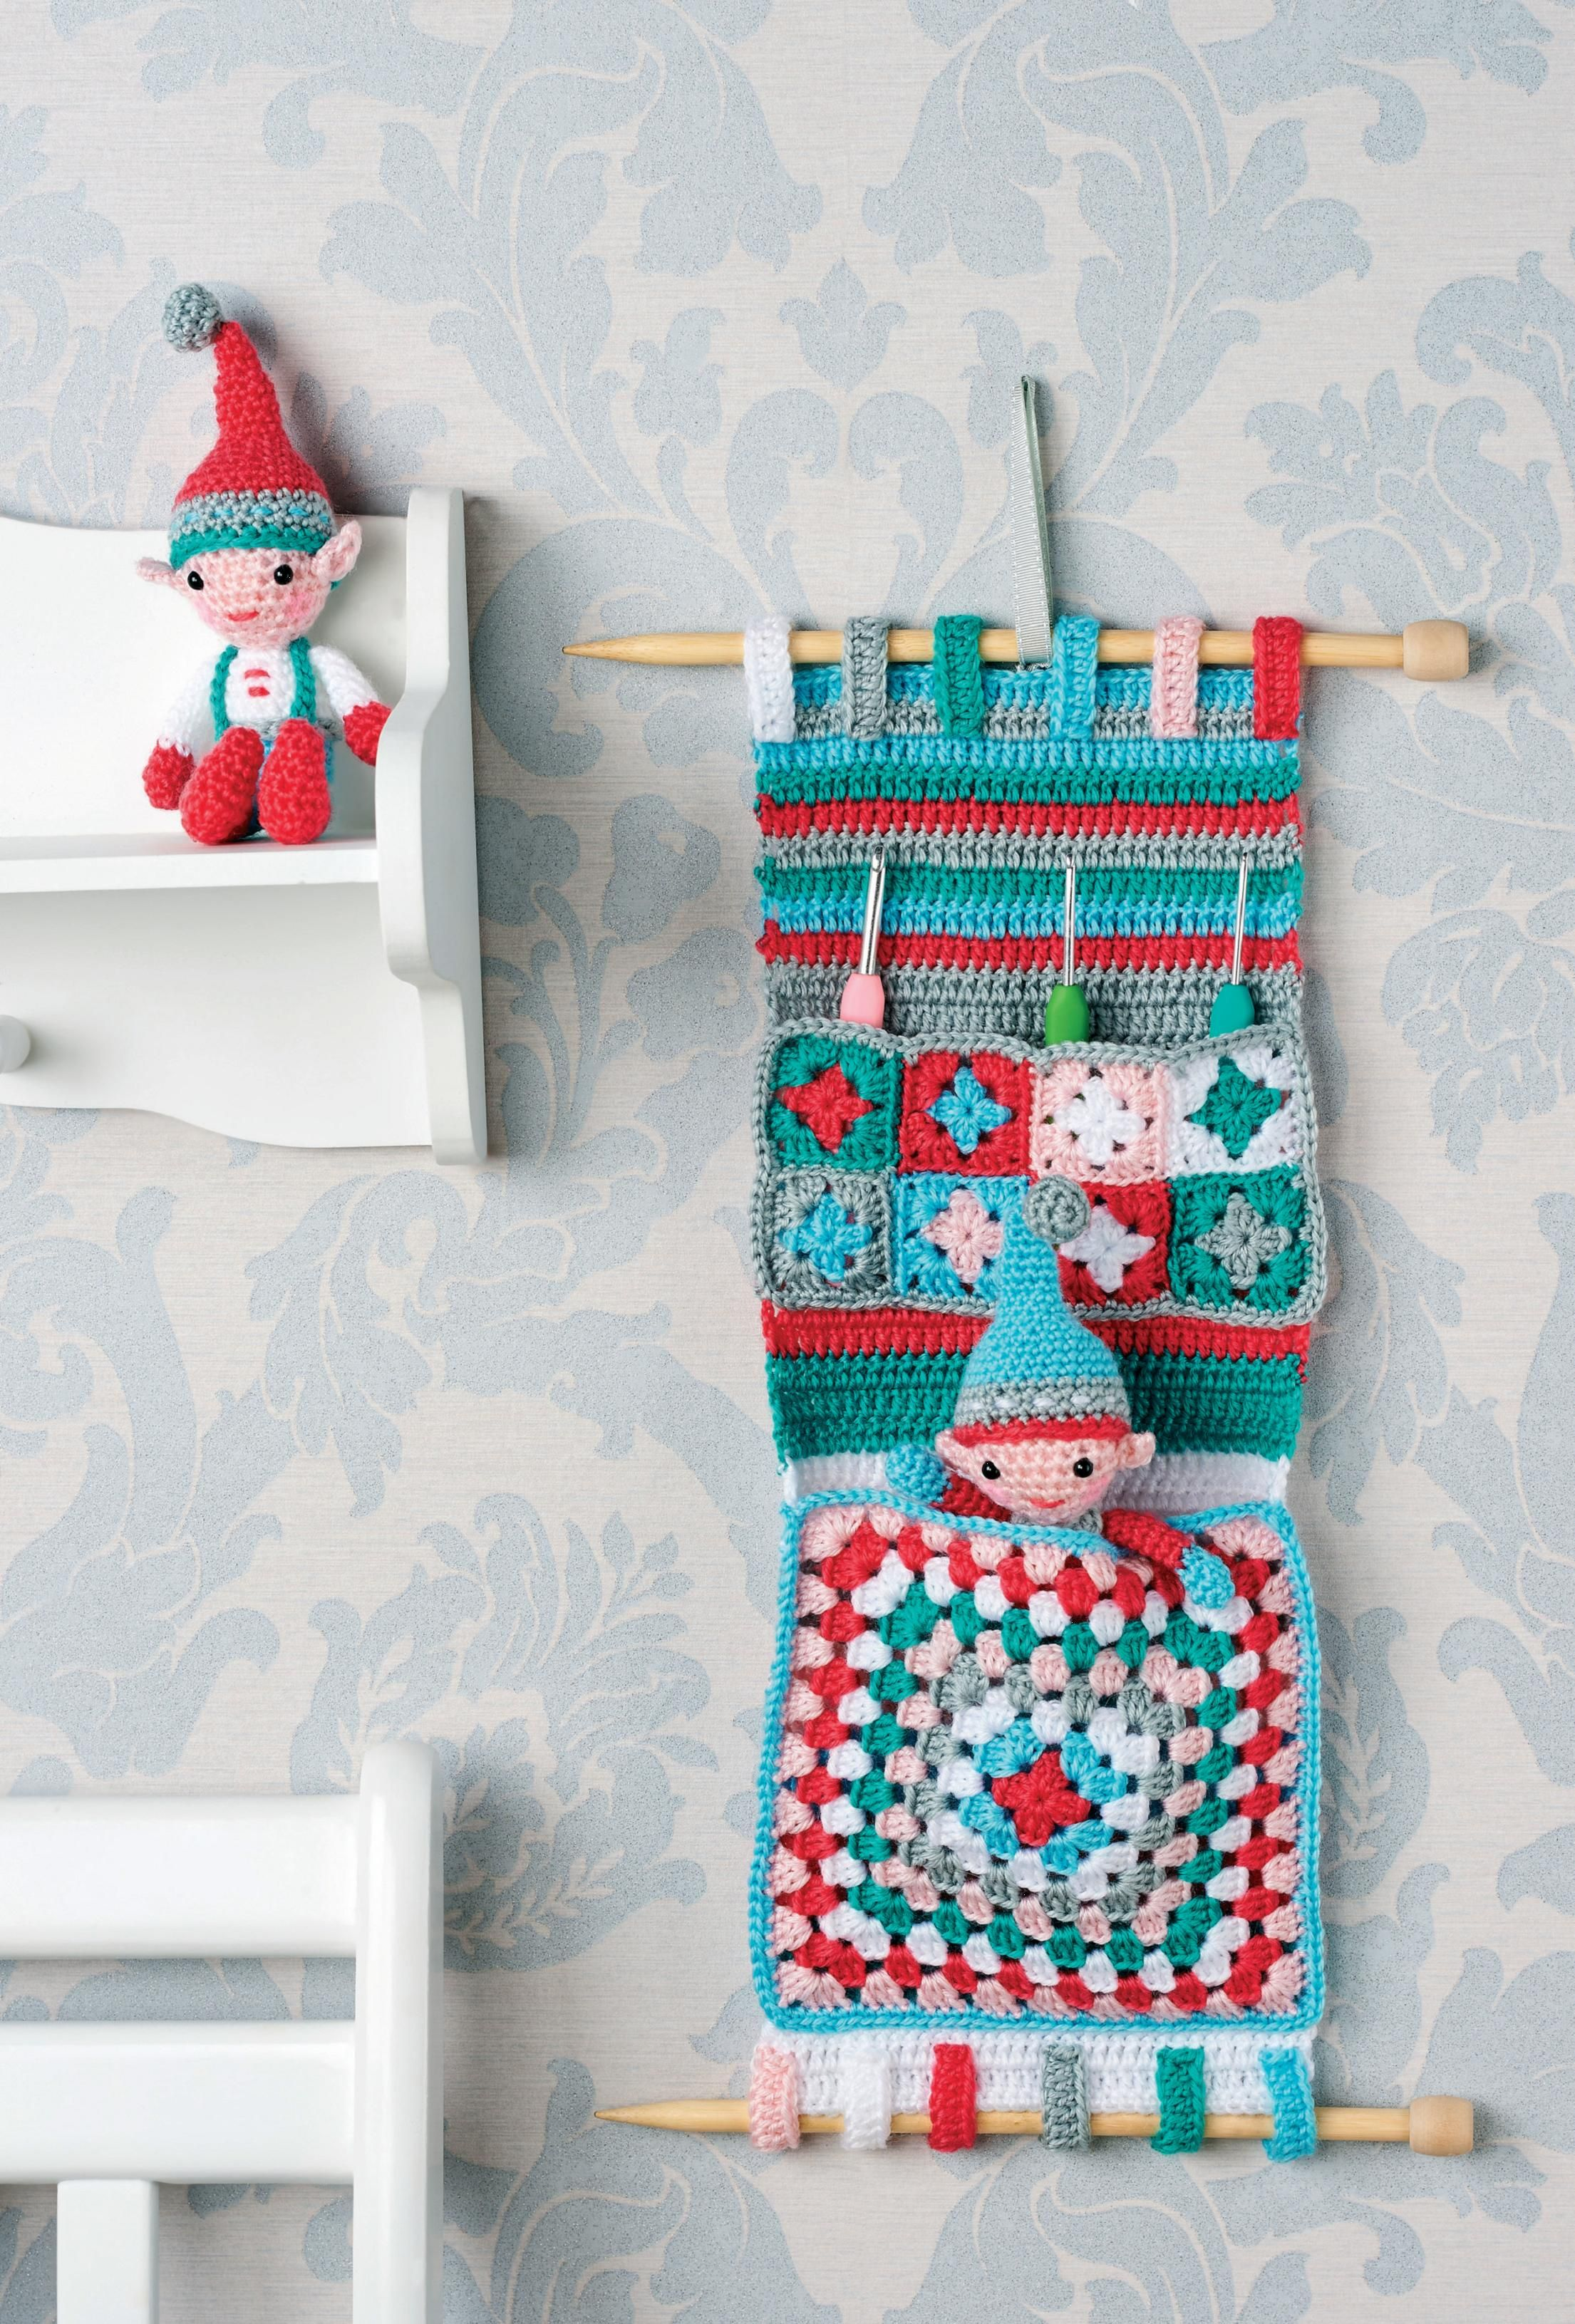 Crochet Hanging Organizer For Baby Room Free Pattern